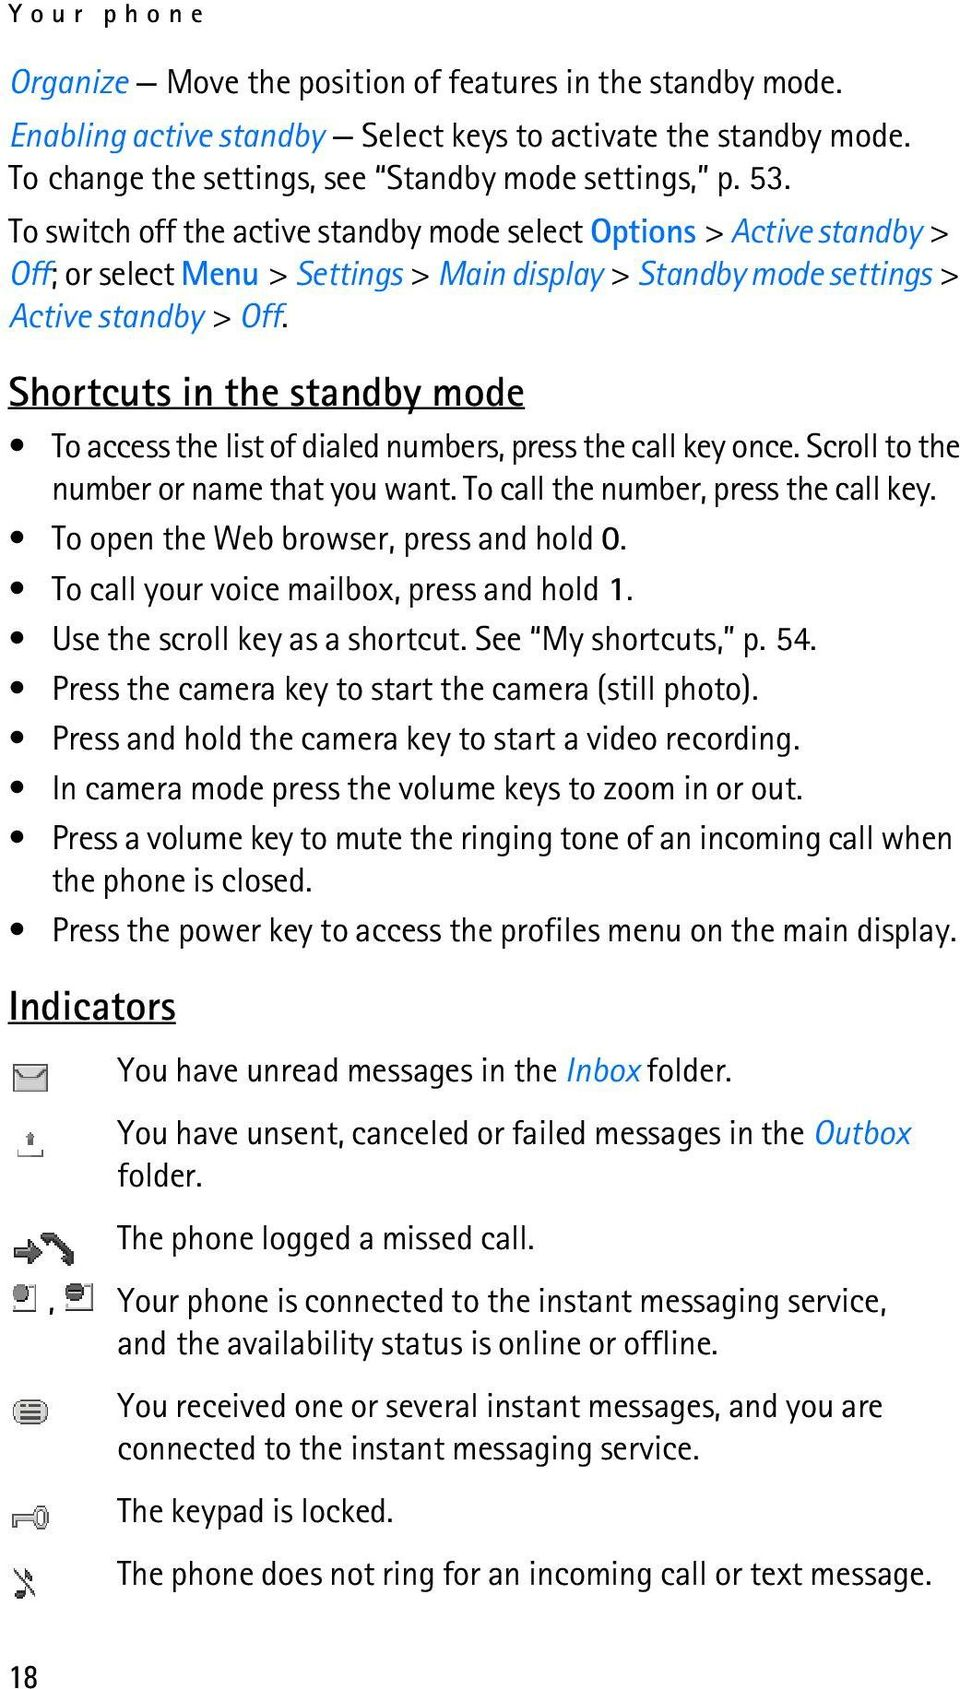 Shortcuts in the standby mode To access the list of dialed numbers, press the call key once. Scroll to the number or name that you want. To call the number, press the call key.